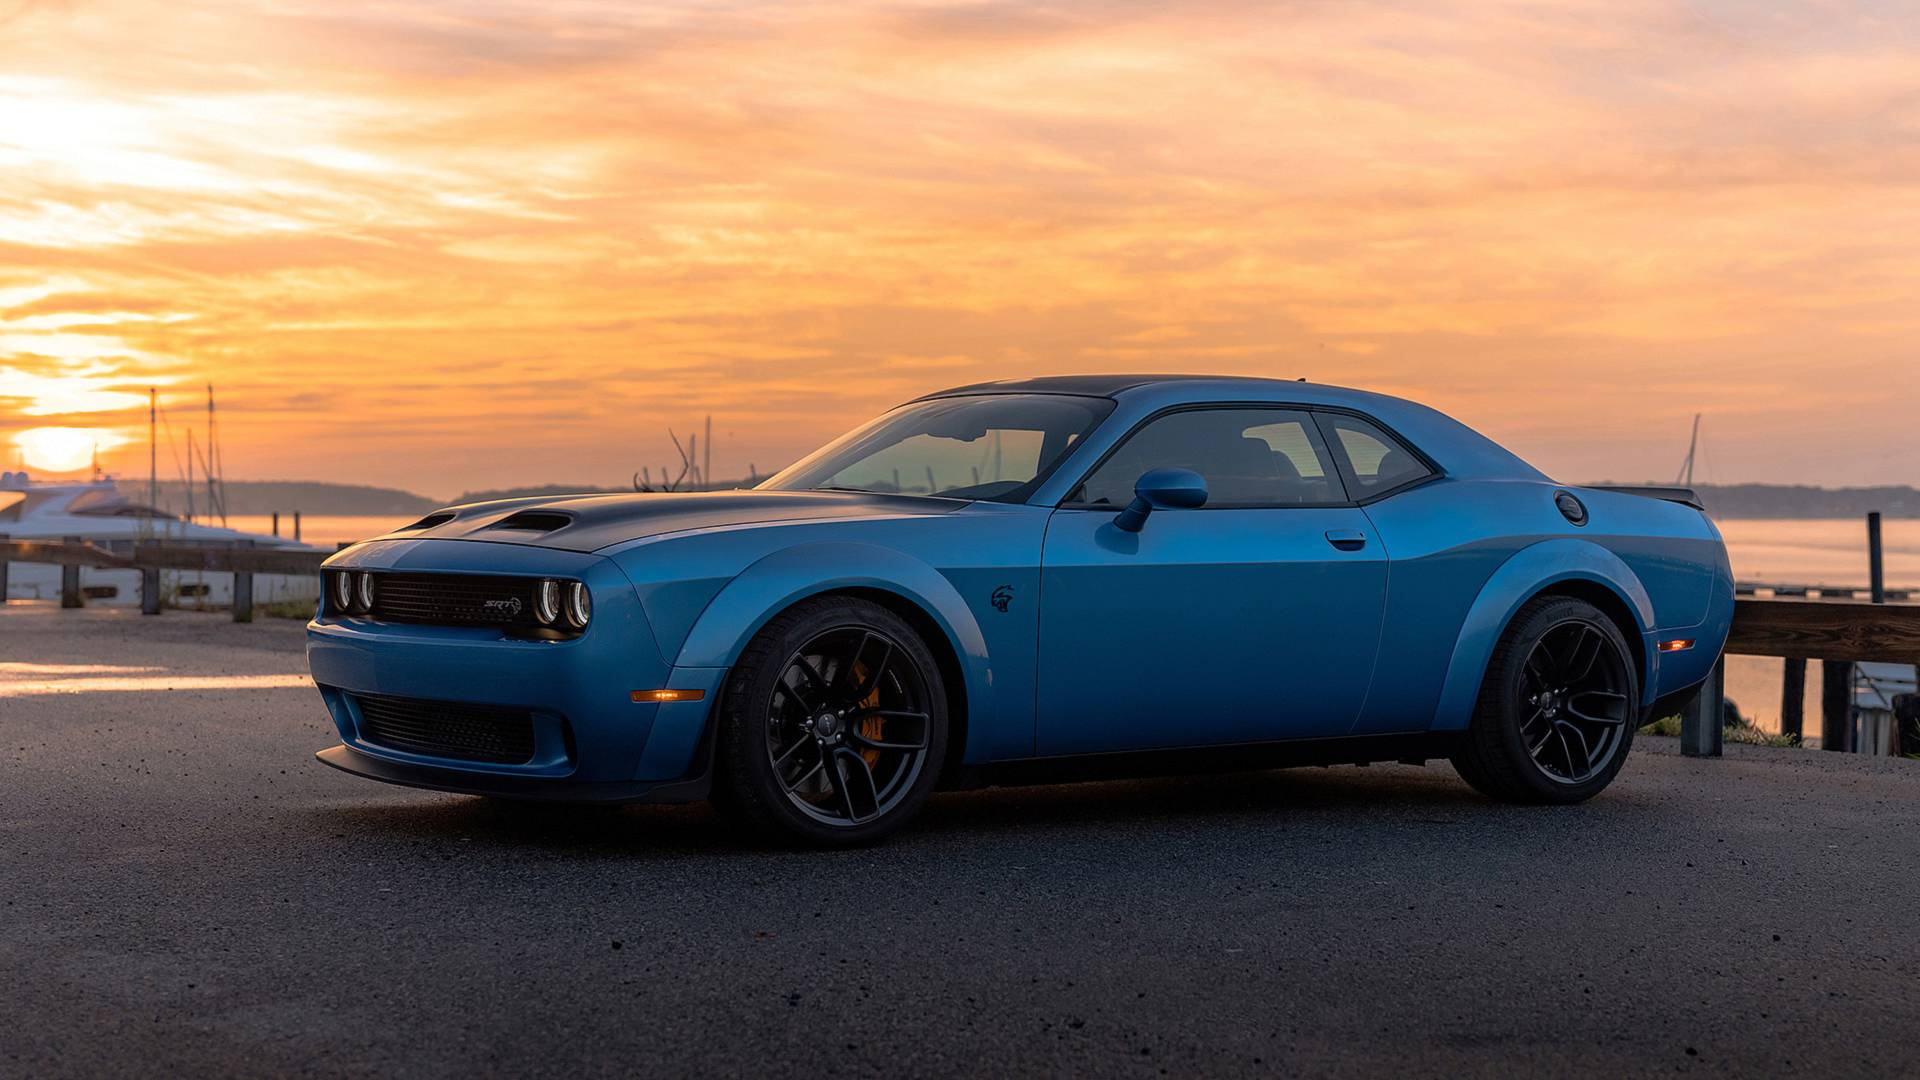 2019 Dodge Challenger Srt Hellcat Redeye First Drive Demon Spawn